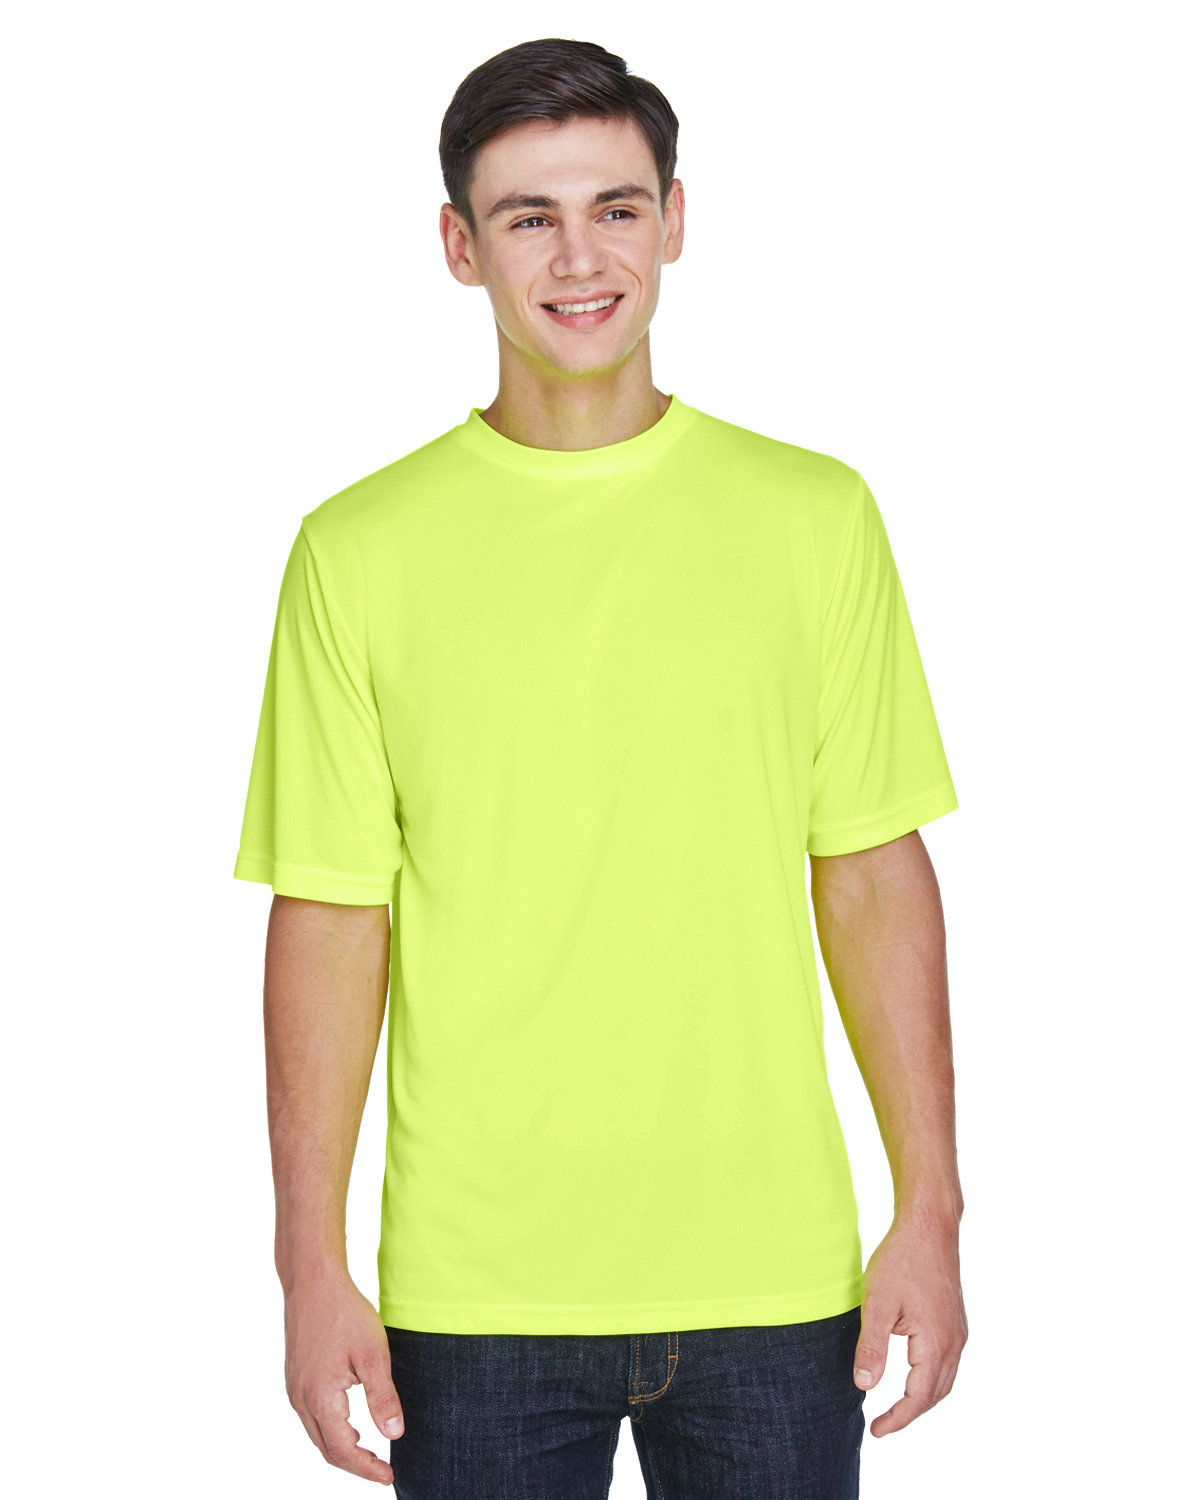 Team 365 Men's Zone Performance T-Shirt SAFETY YELLOW